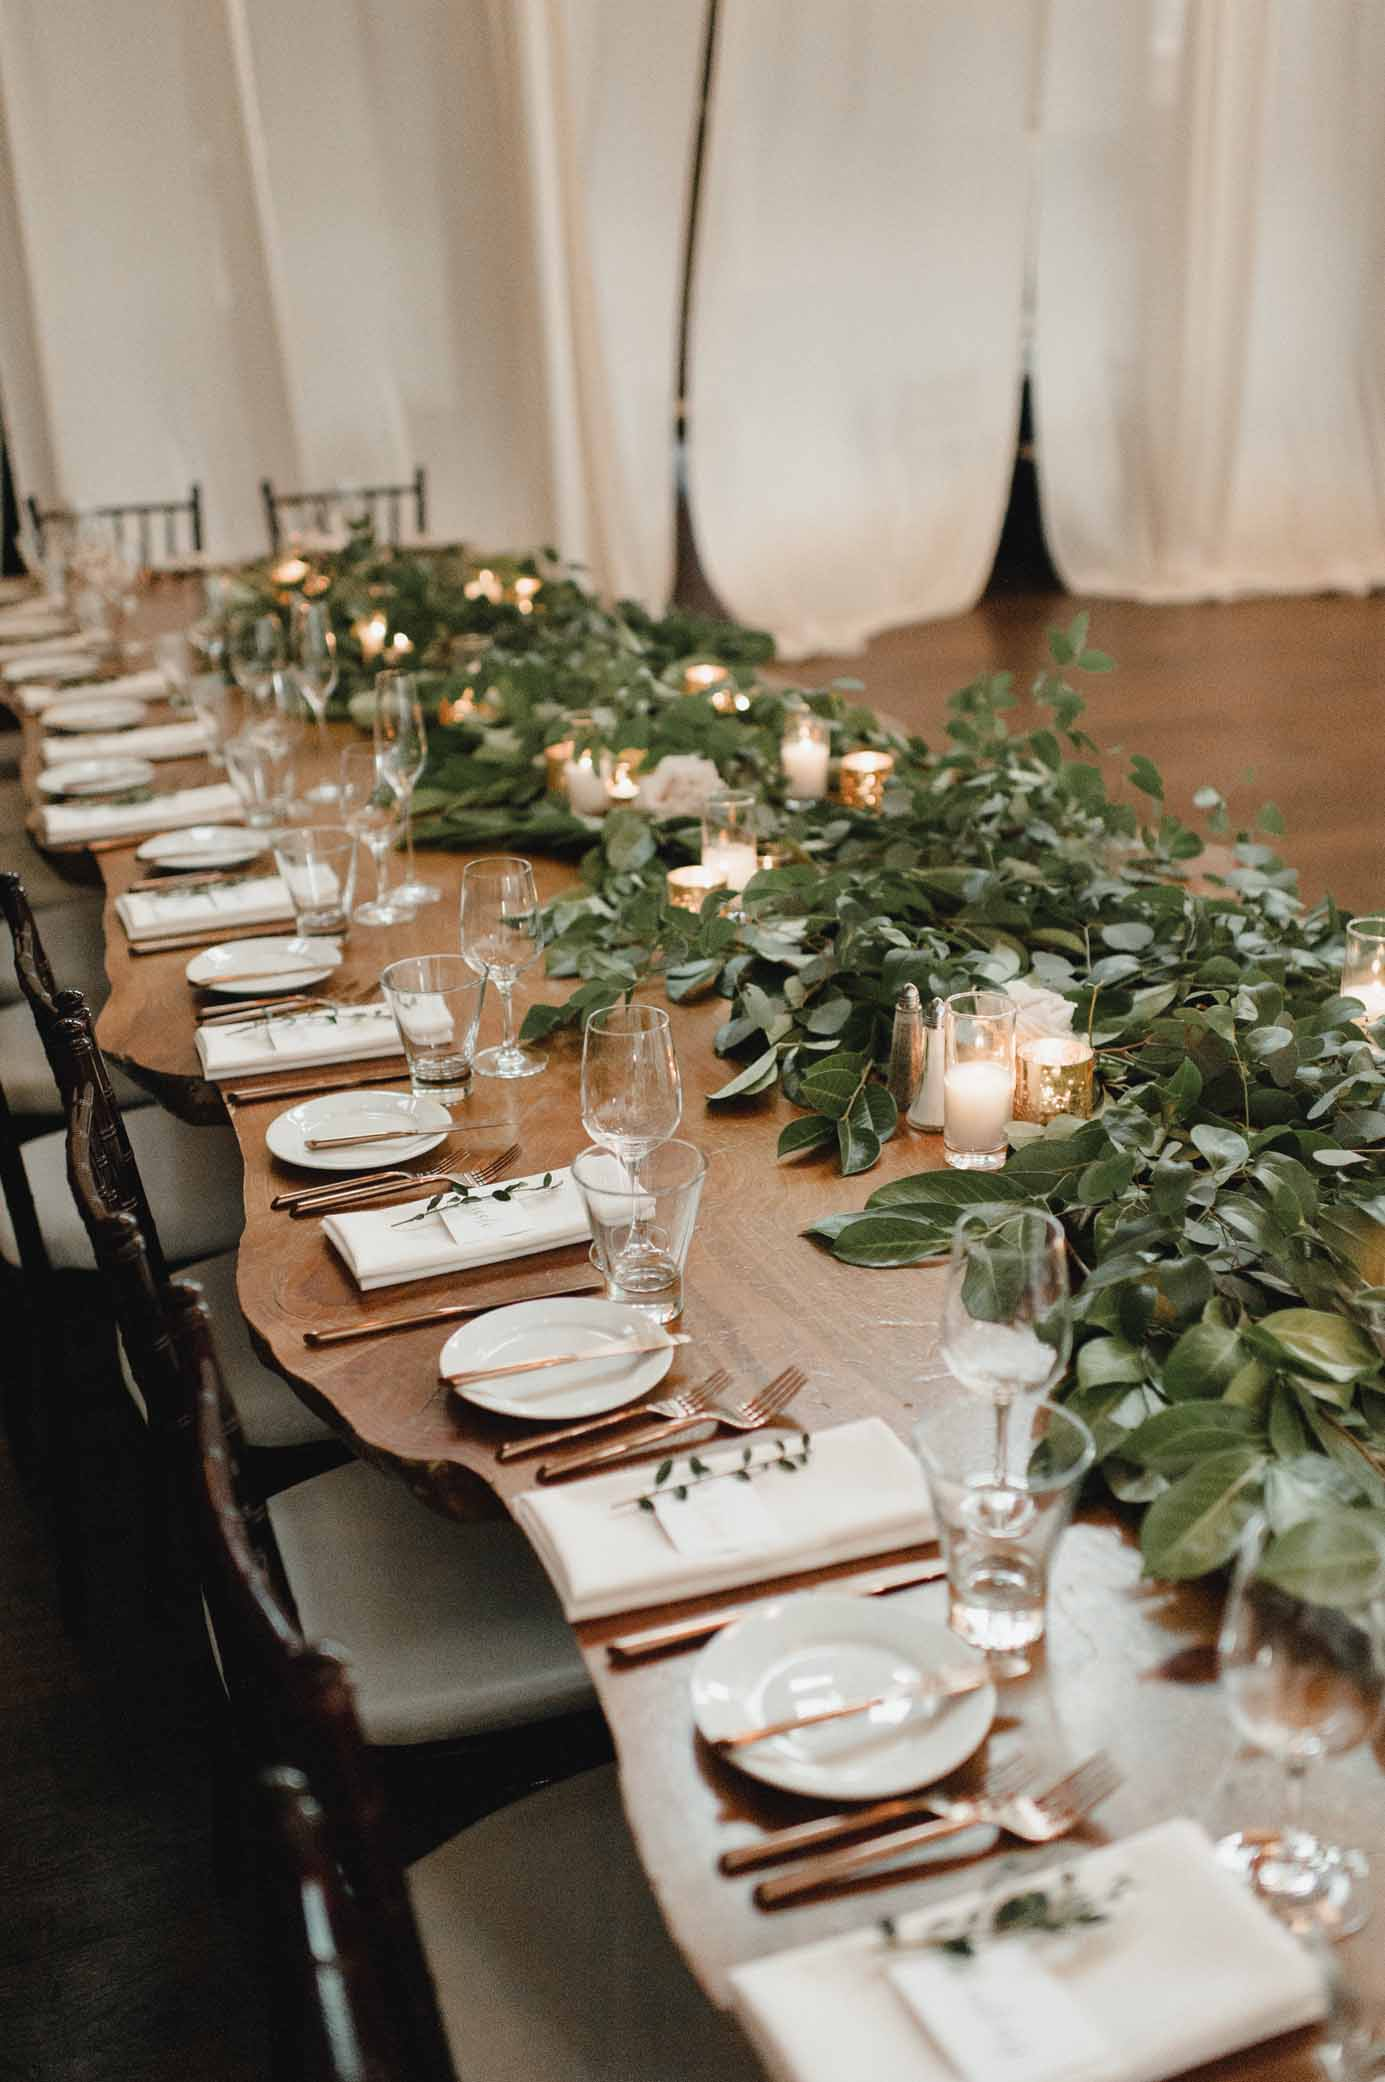 Wedding head table with greenery runner and candles, for romantic greenery wedding in Seattle - Flora Nova Design